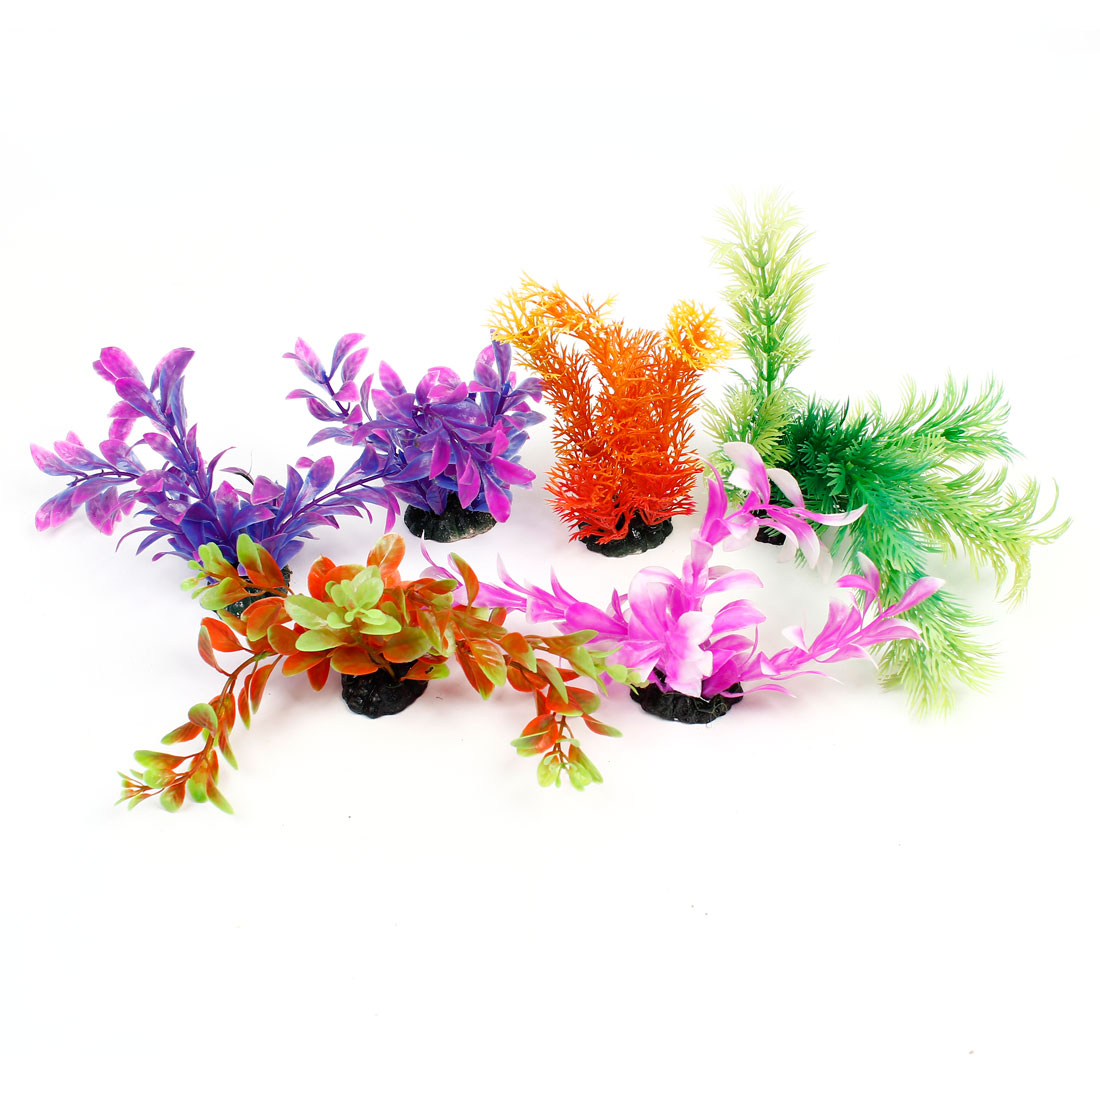 6PCS Green Red Fuchsia Artificial Vivid Plants Ornament for Aquarium Fish Tank